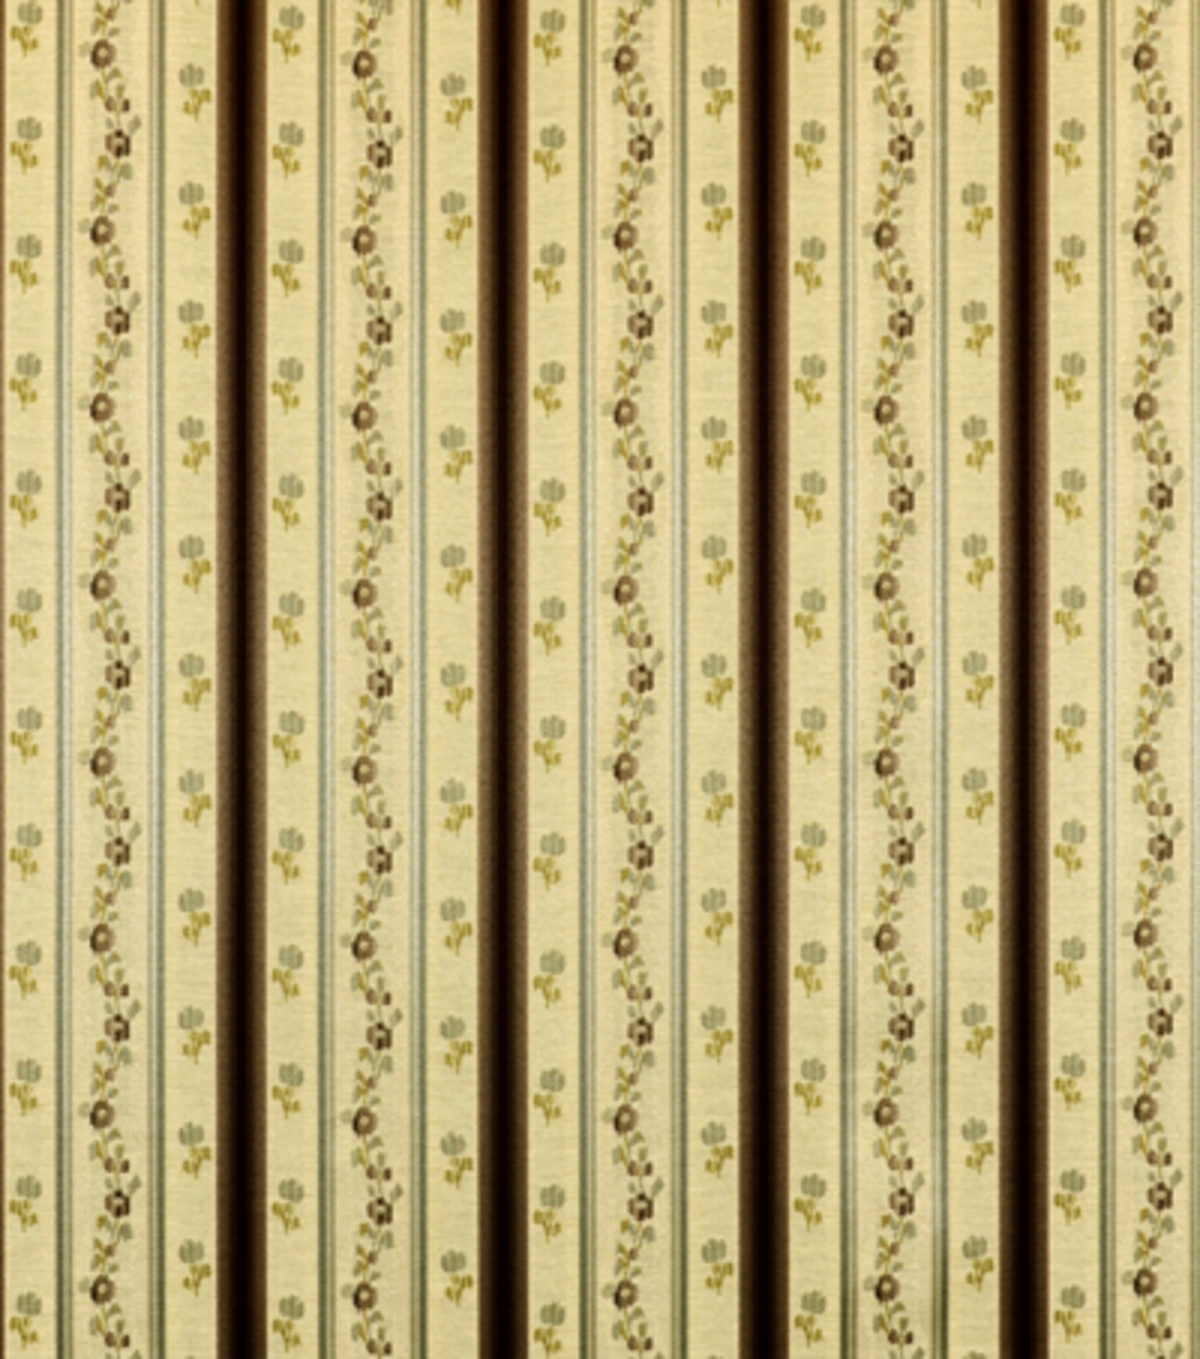 Home Decor 8\u0022x8\u0022 Fabric Swatch-Covington Bryant 440 French Lavender